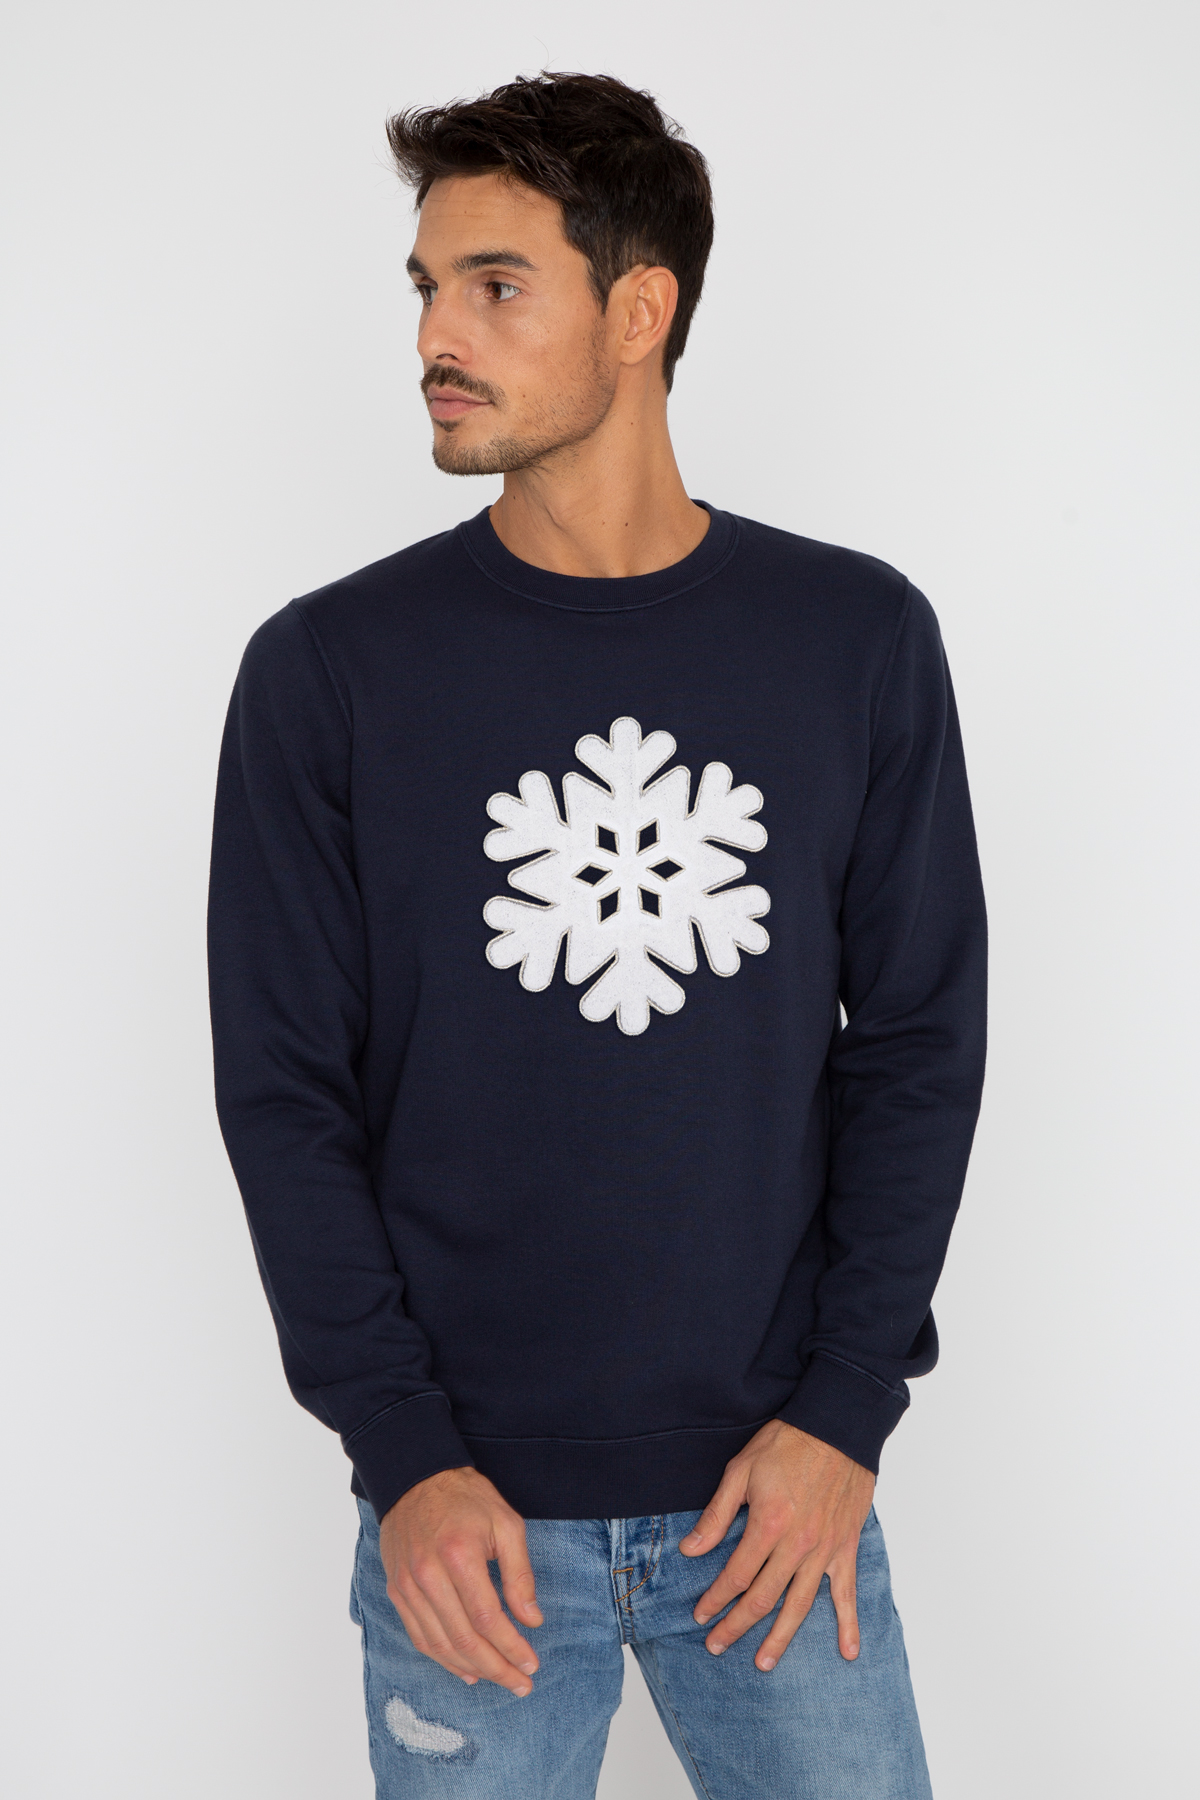 Photo de Soldes homme Sweat SNOWFLAKE chez French Disorder